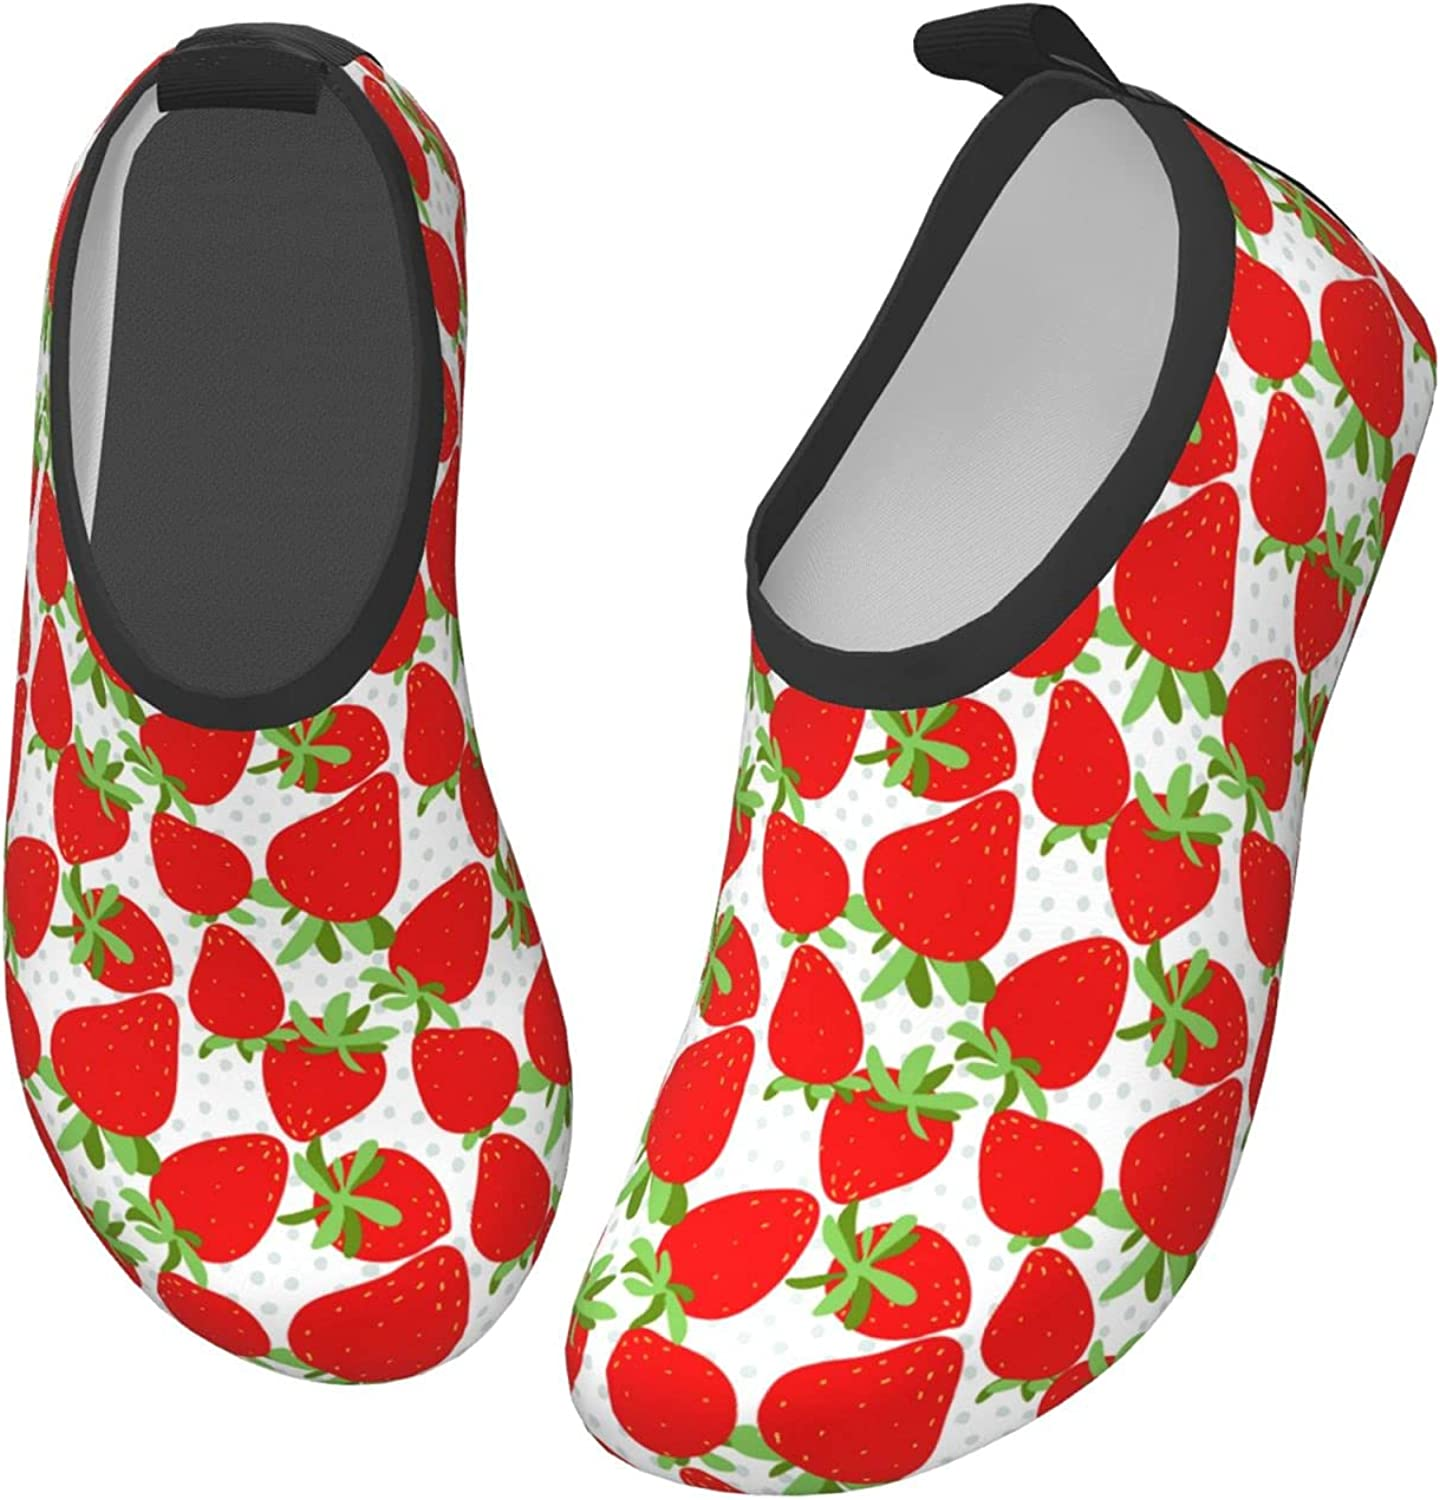 Jedenkuku Cute Strawberry Fruit Cartoon Children's Water Shoes Feel Barefoot for Swimming Beach Boating Surfing Yoga